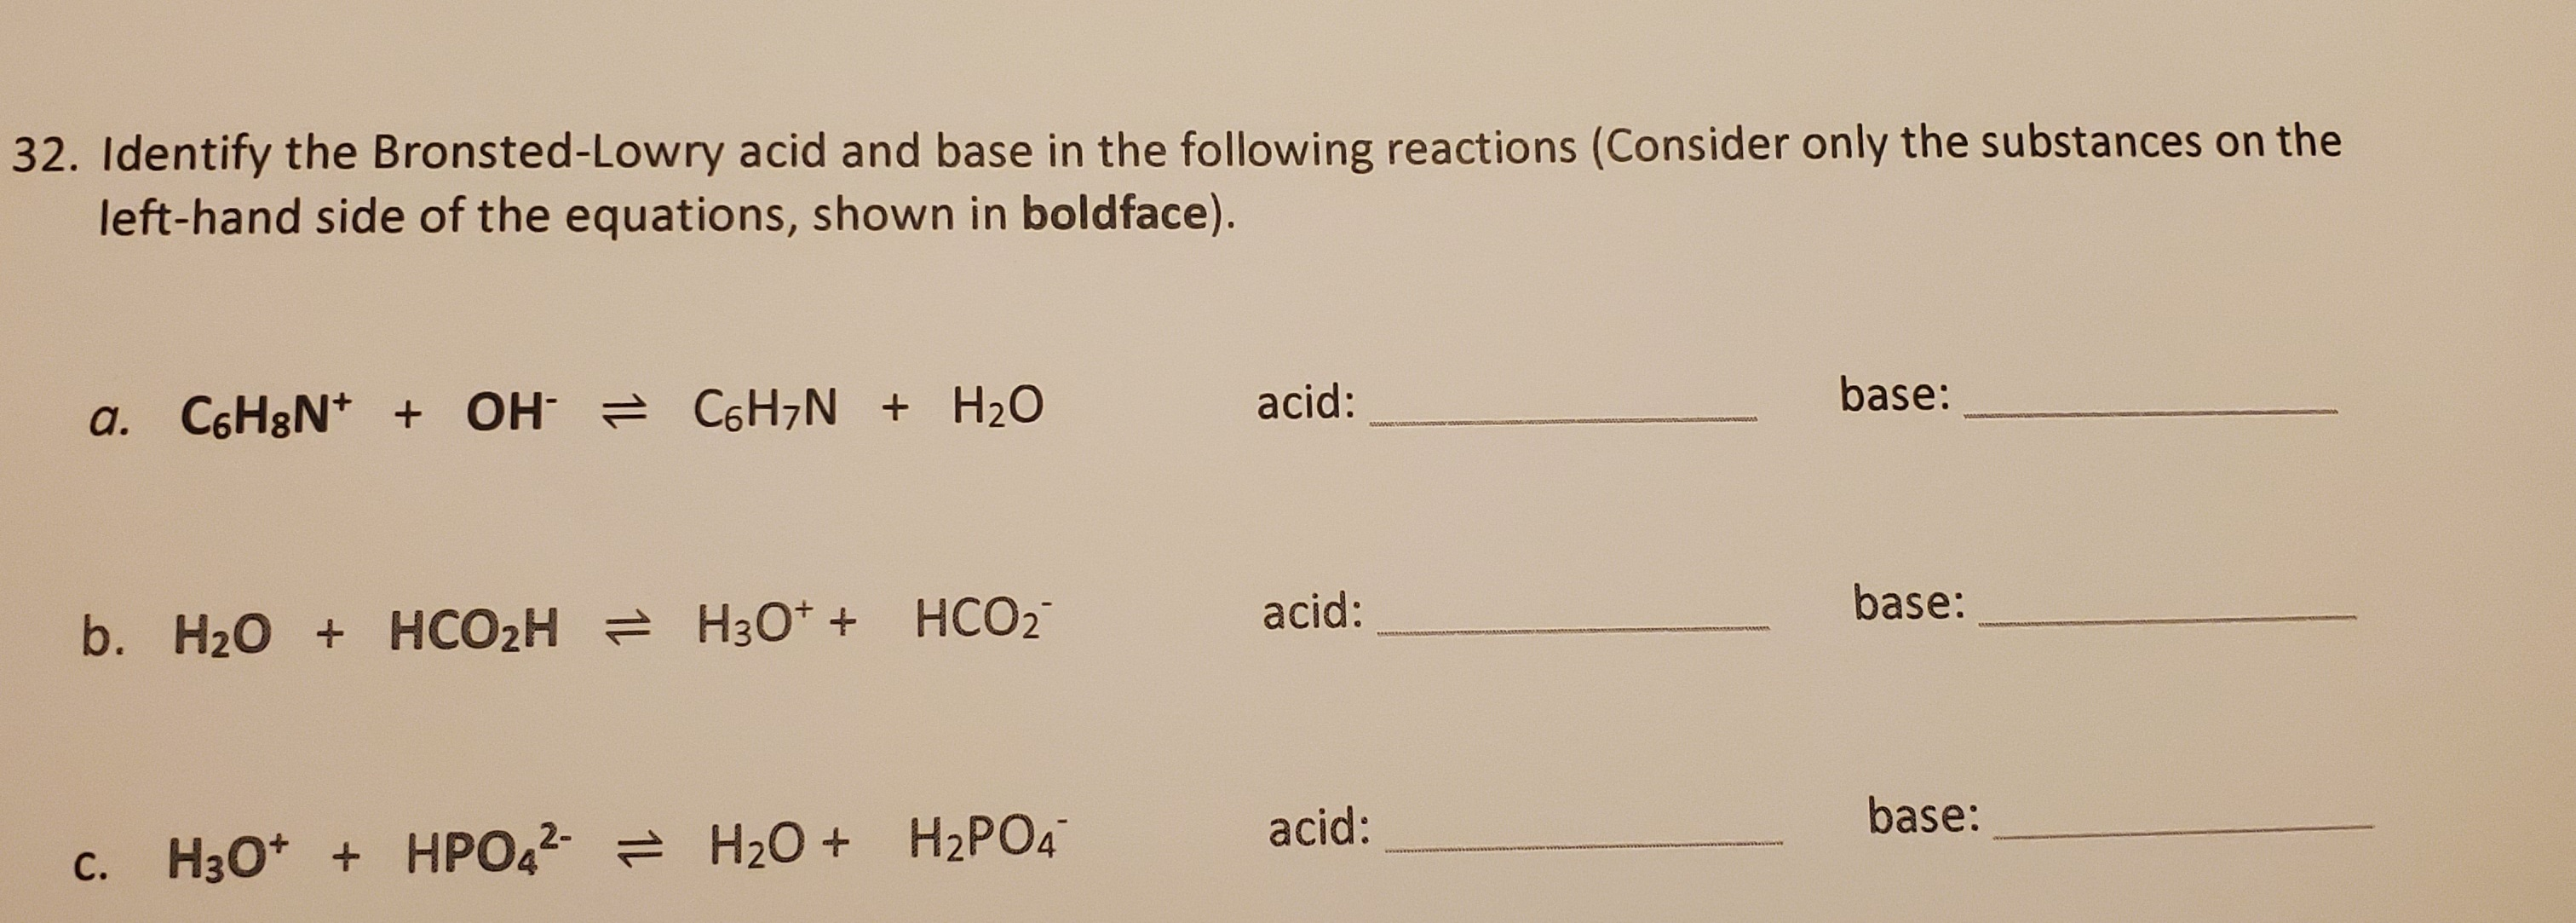 Answered Identify The Bronsted Lowry Acid And